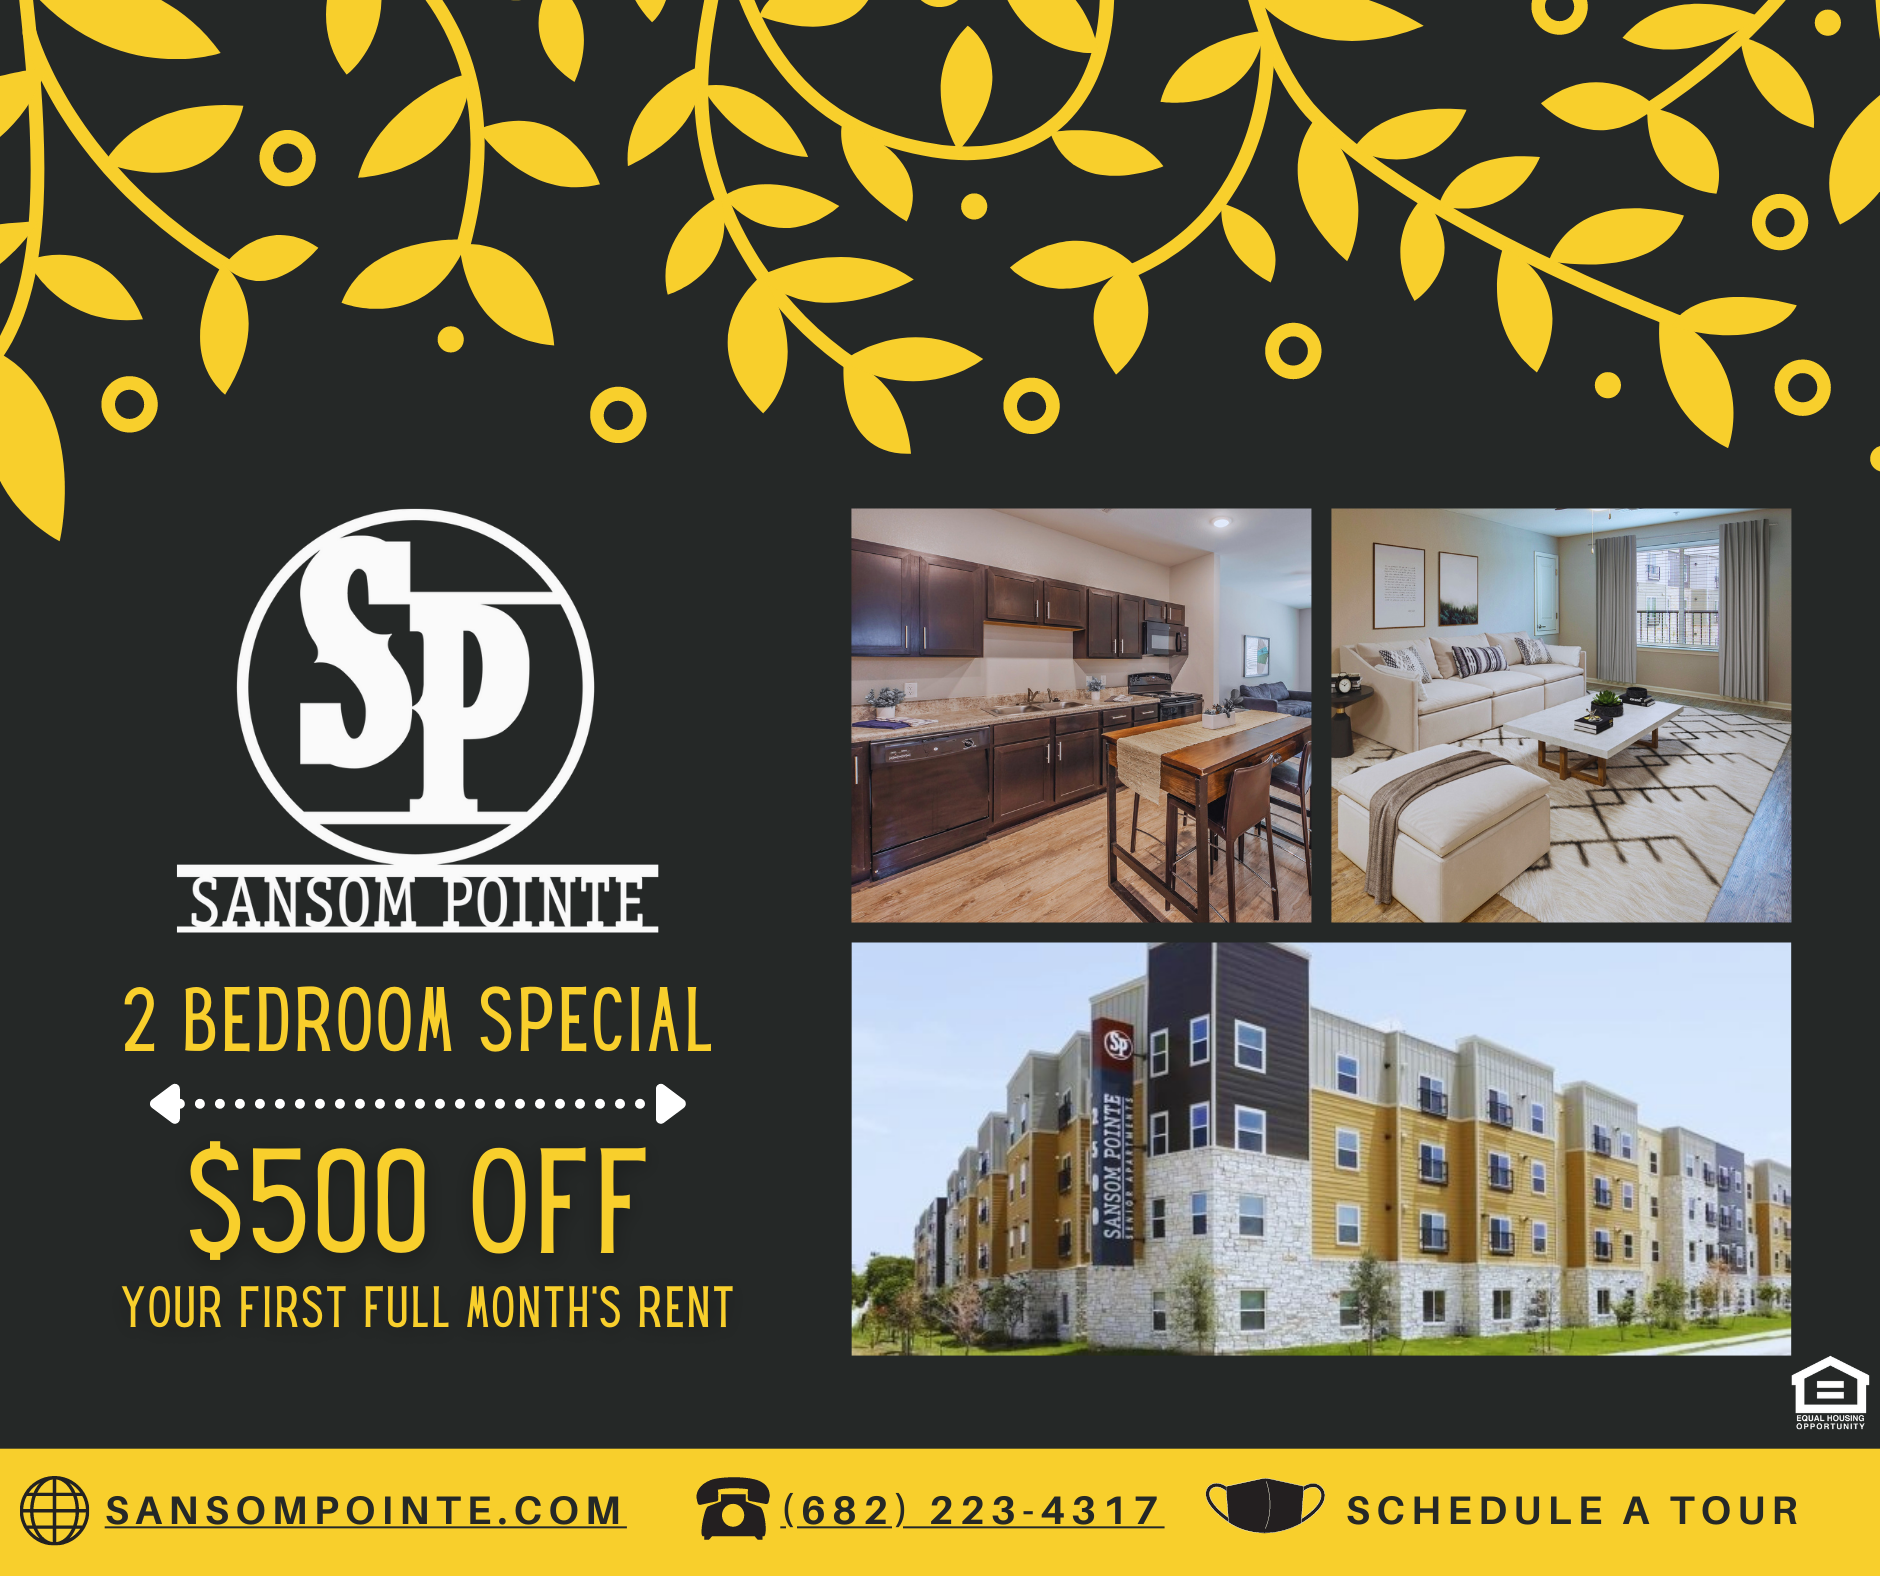 Special for $500 off a 2-bedroom